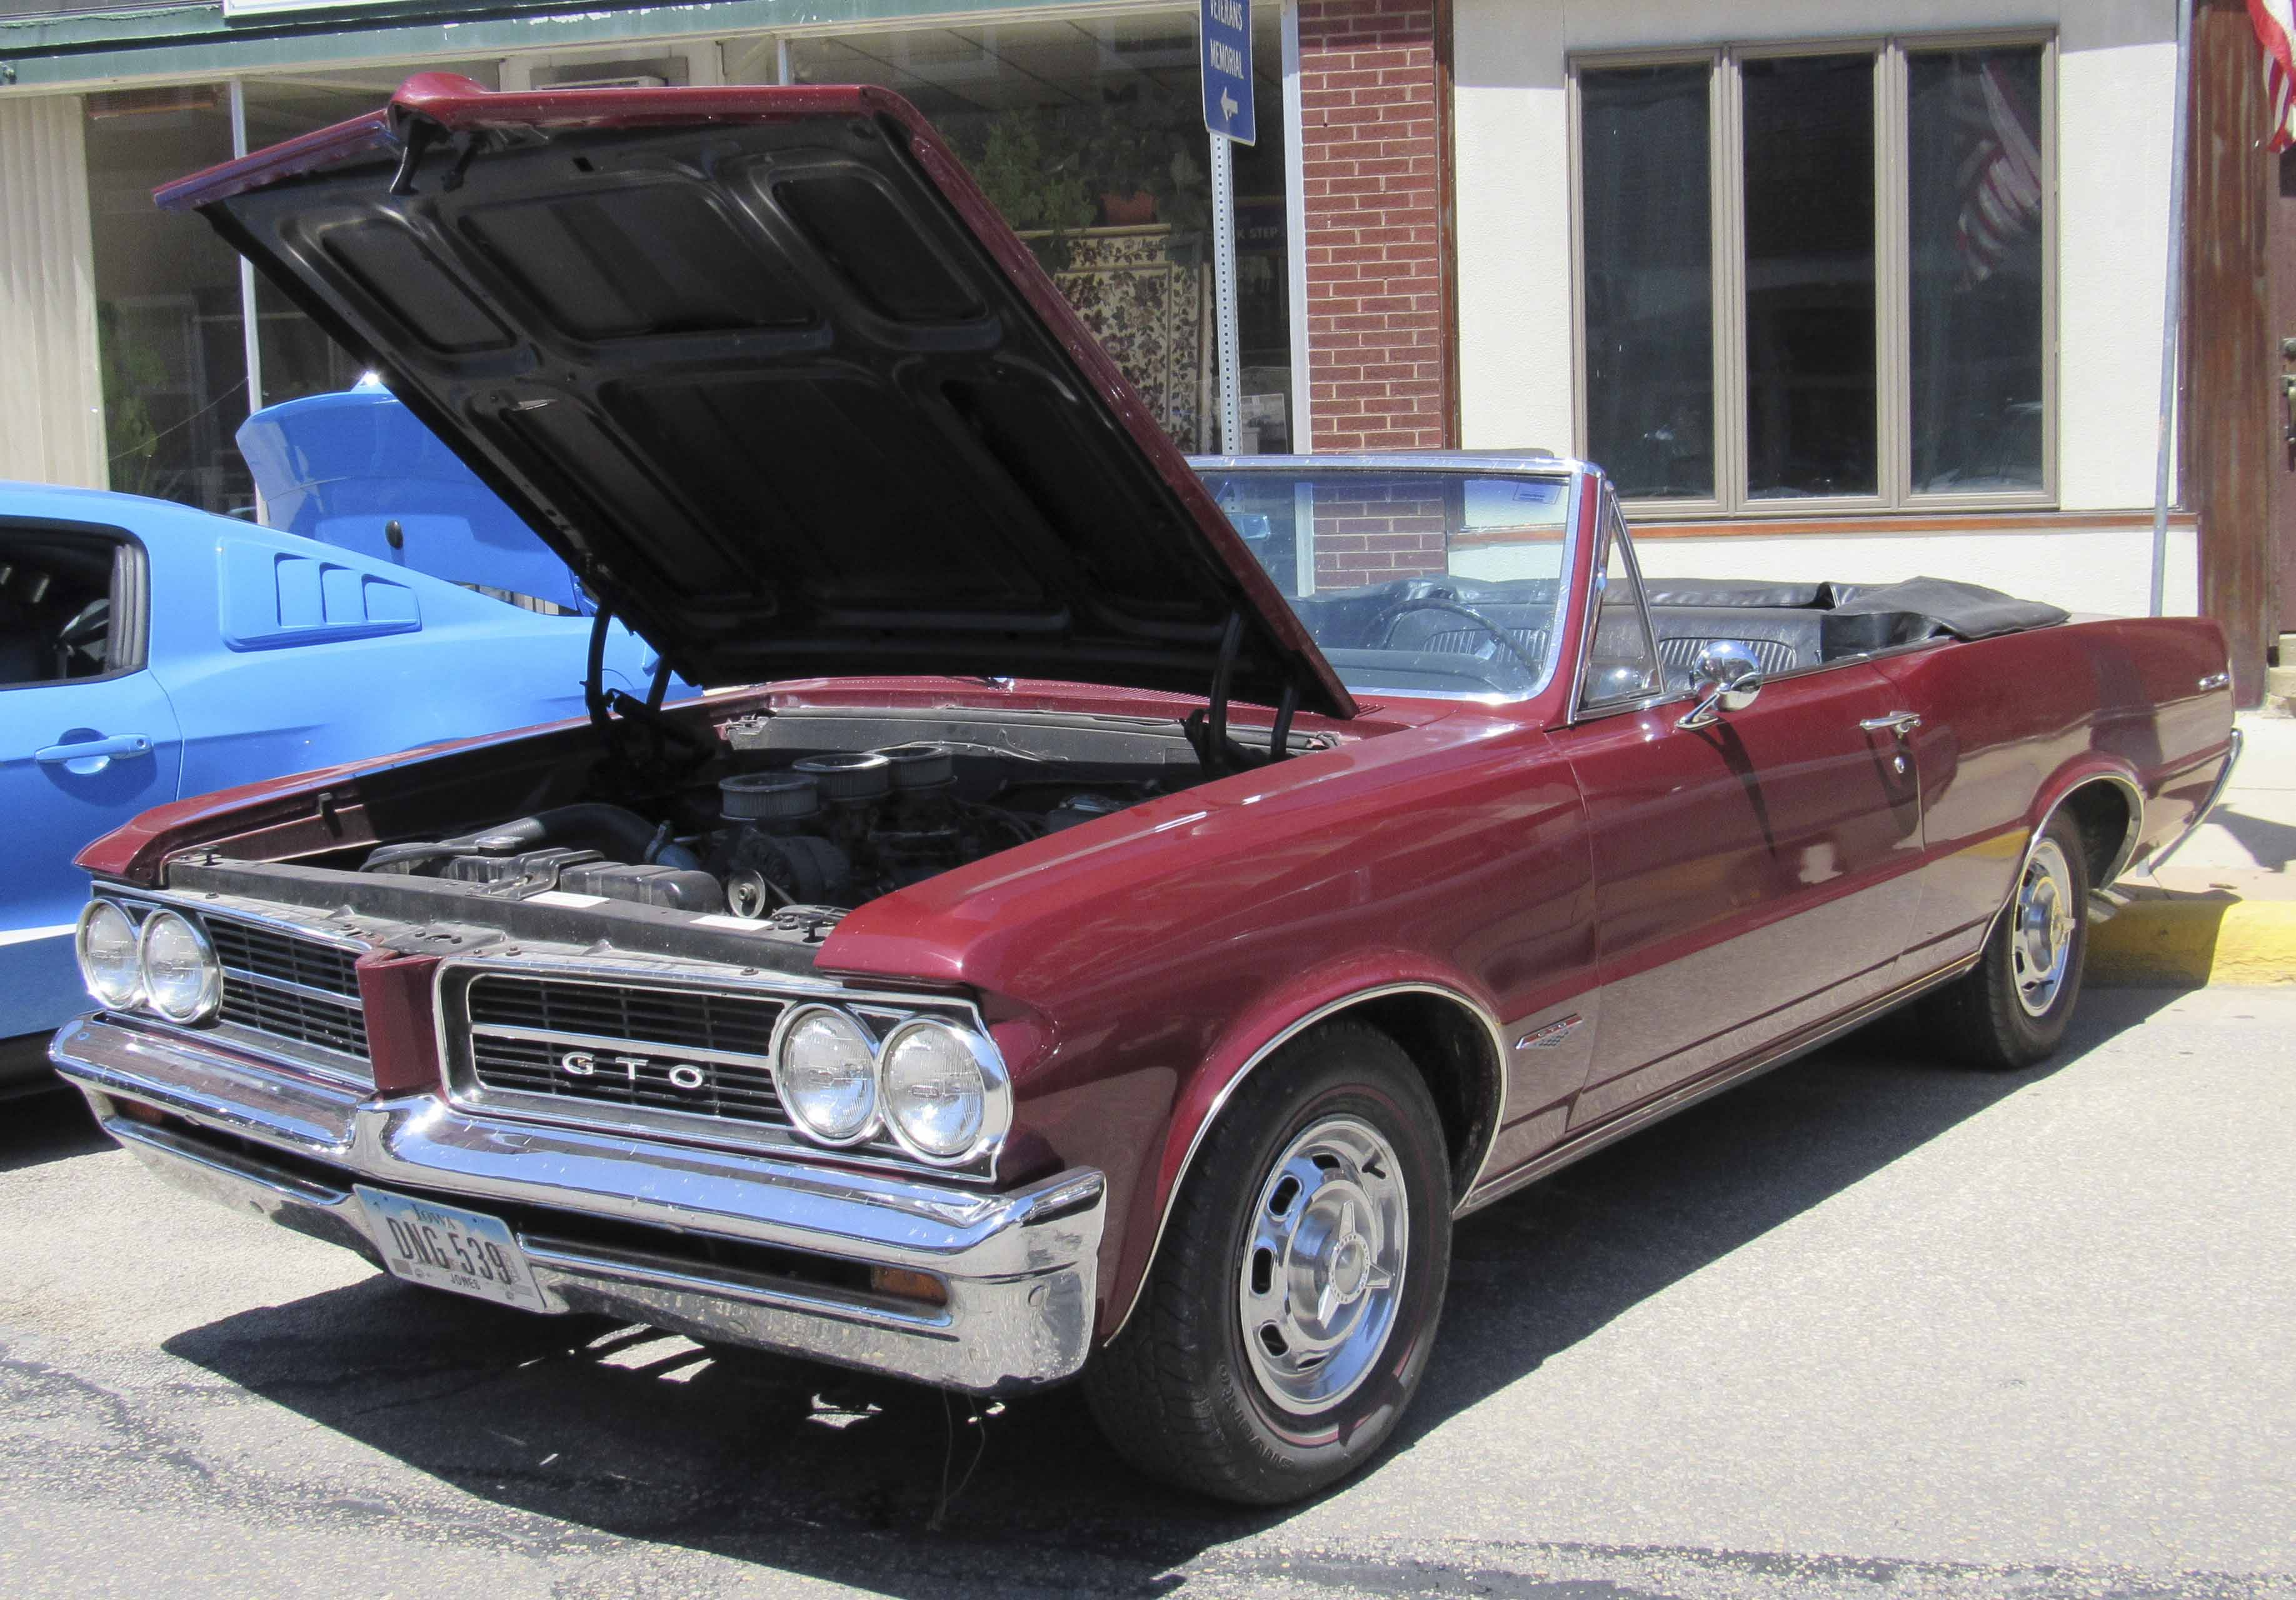 This 1964 Pontiac GTO was on display at Monti in Motion. The owner is Ed Kremer of Monticello.